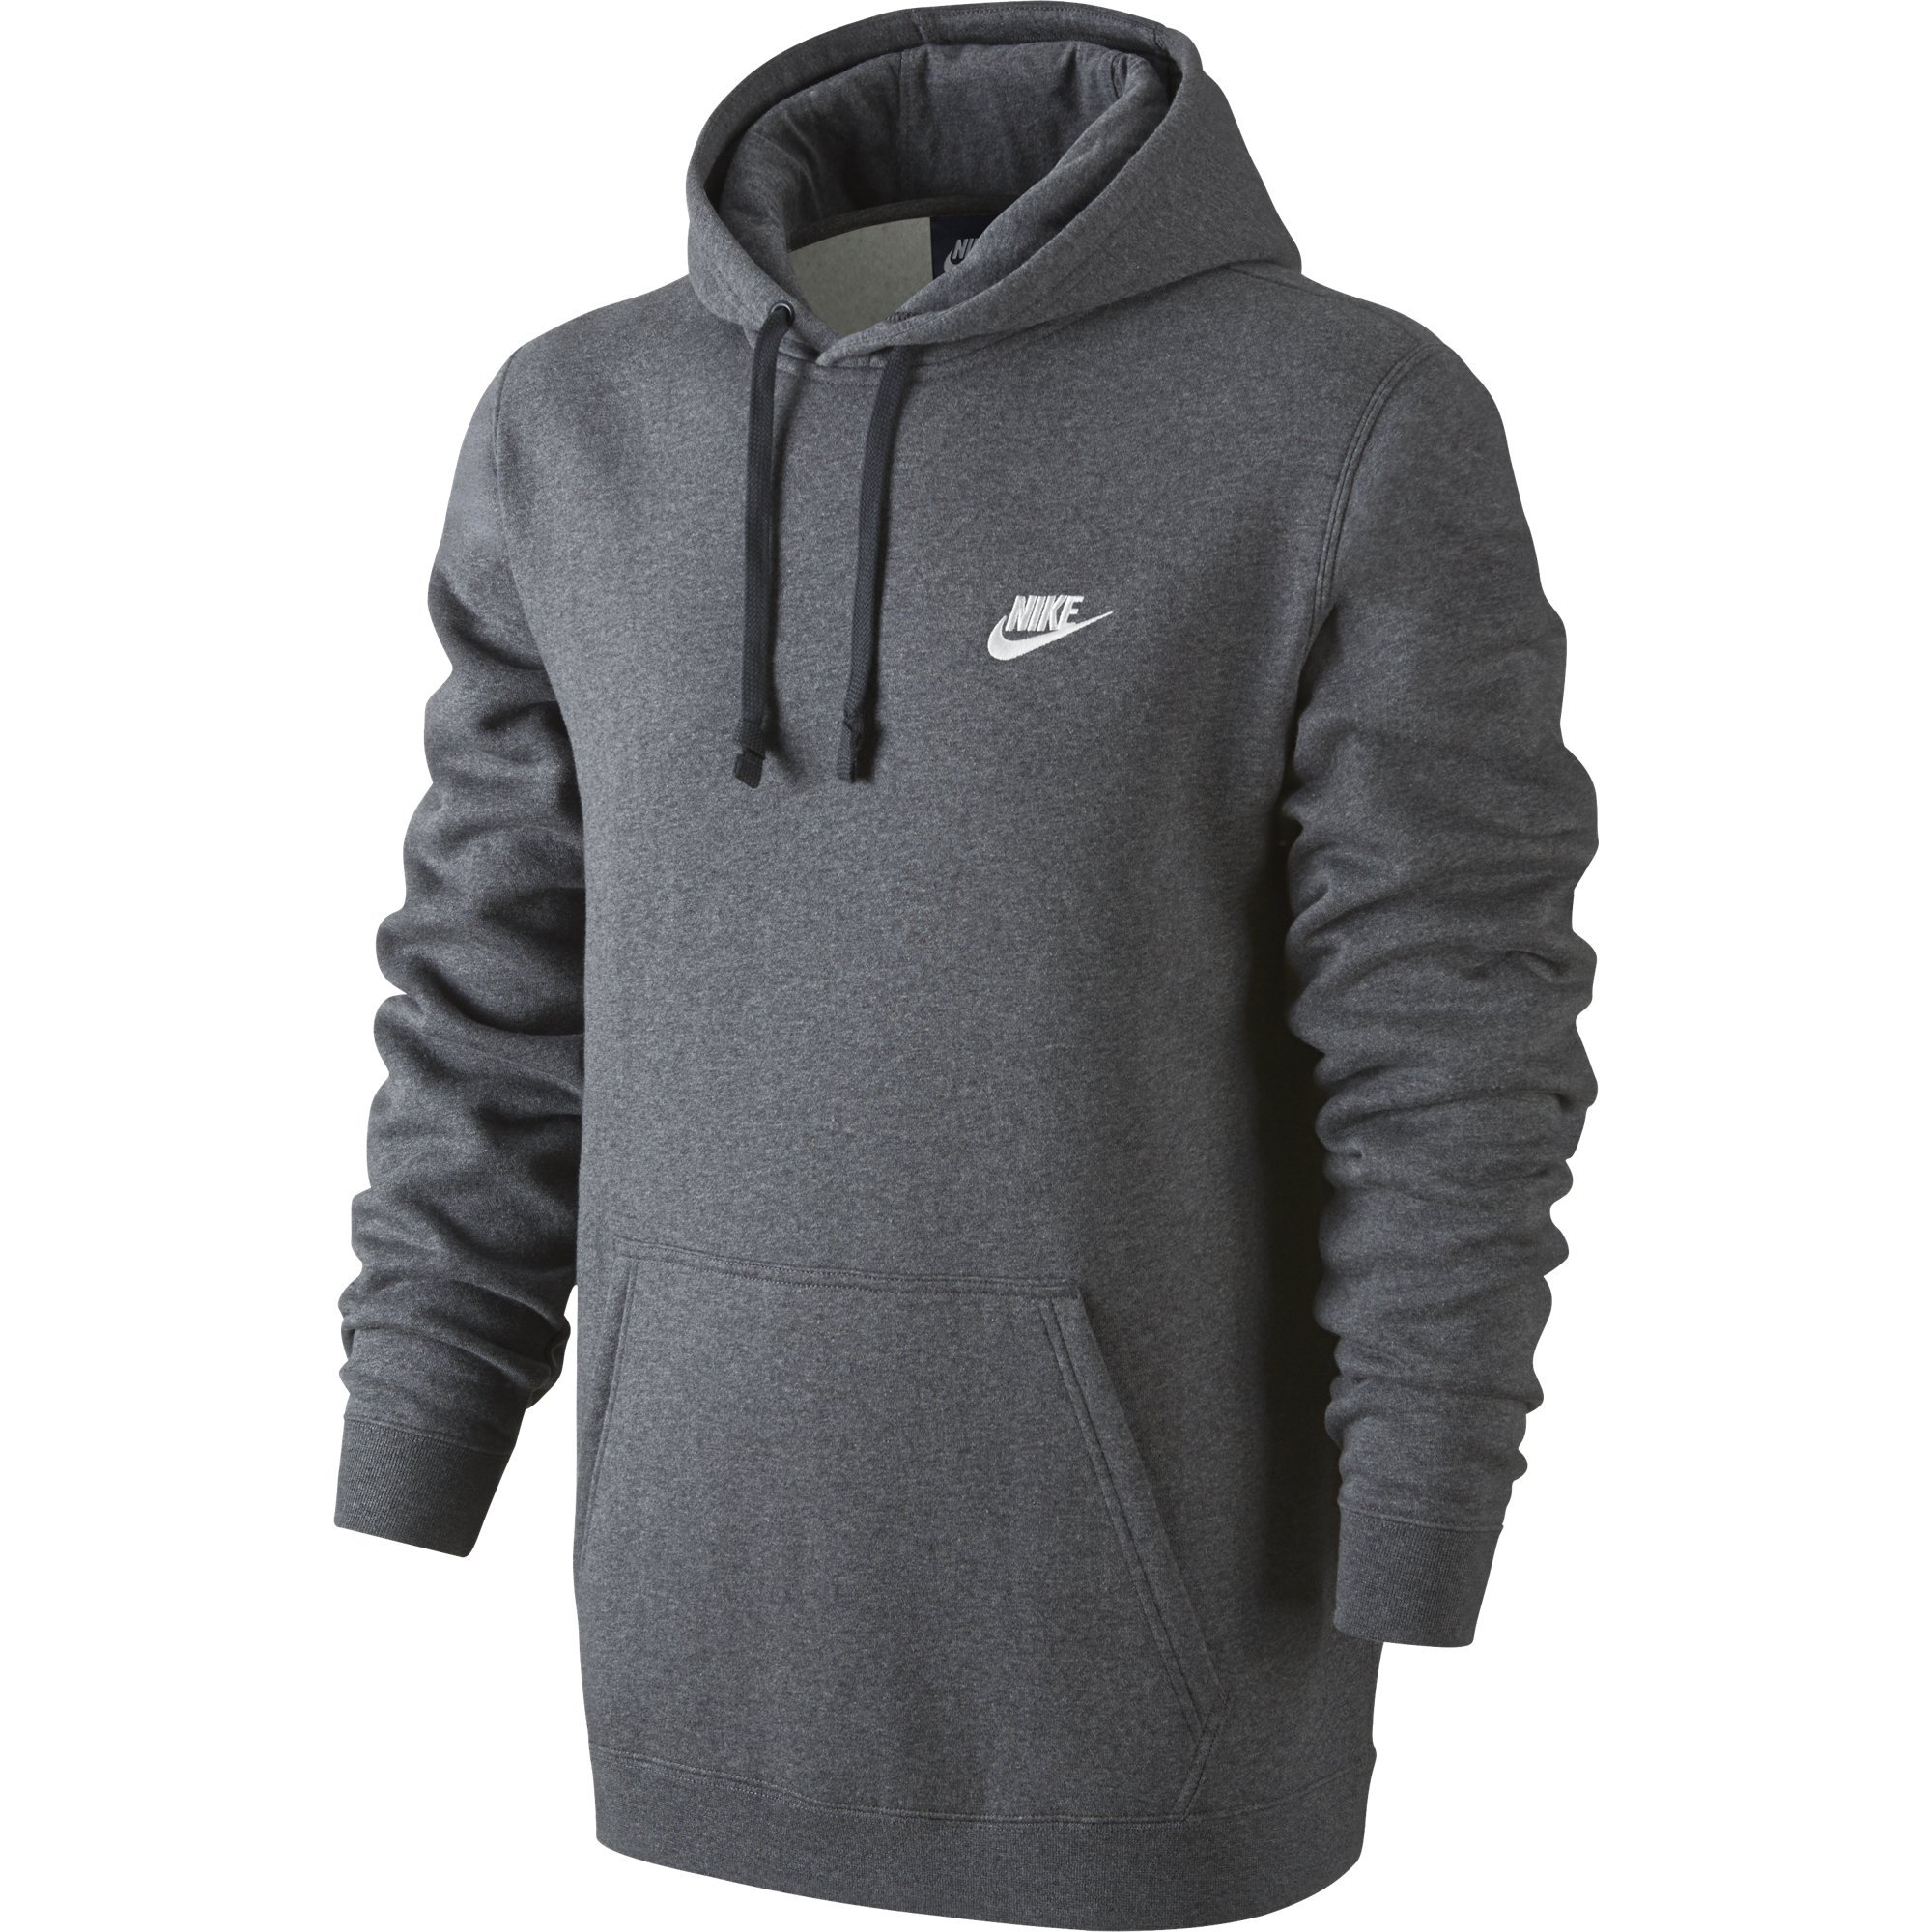 NIKE Sportswear Men's Pullover Club Hoodie, Charcoal Heather/Charcoal Heather/White, XXXX-Large Tall